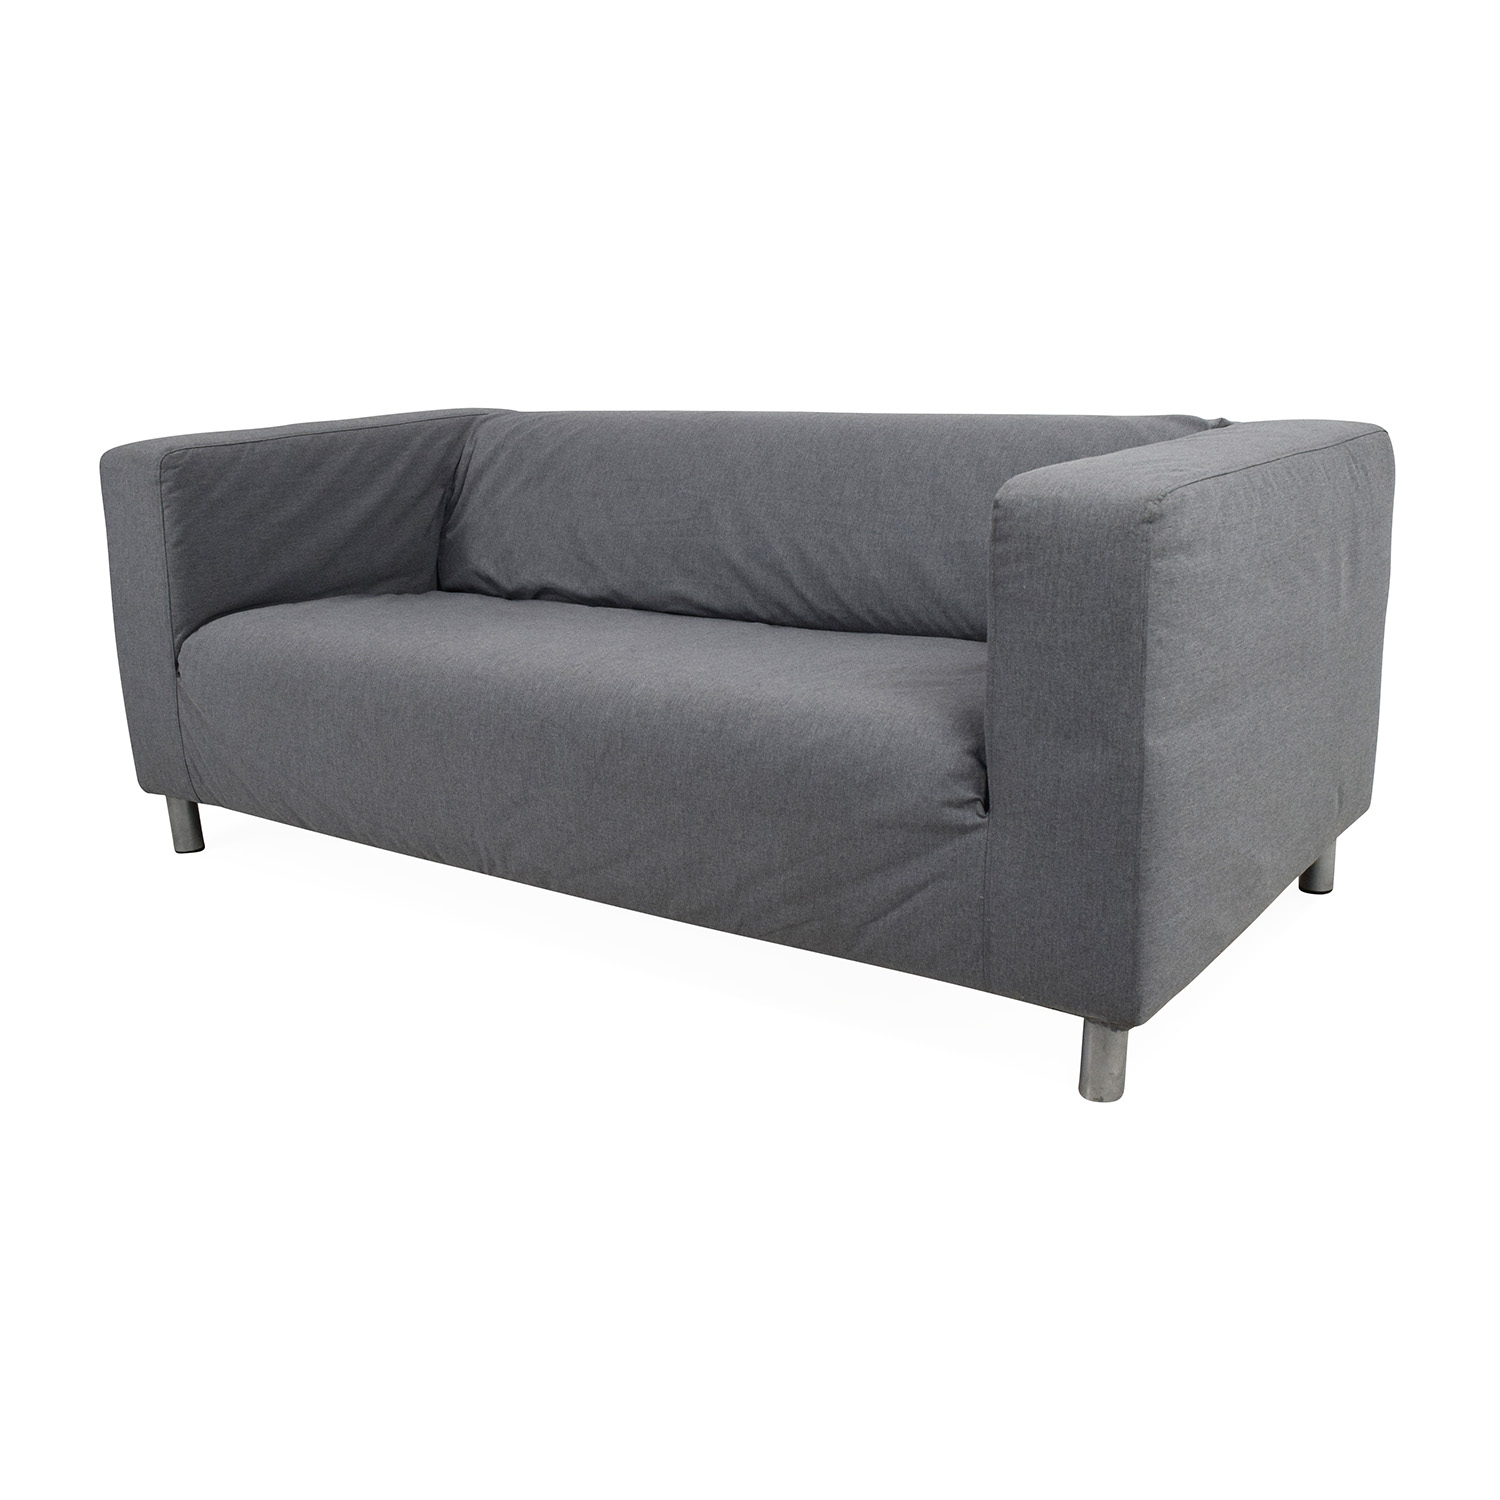 50 off ikea ikea klippan gray loveseat sofas for Ikea gray sofa